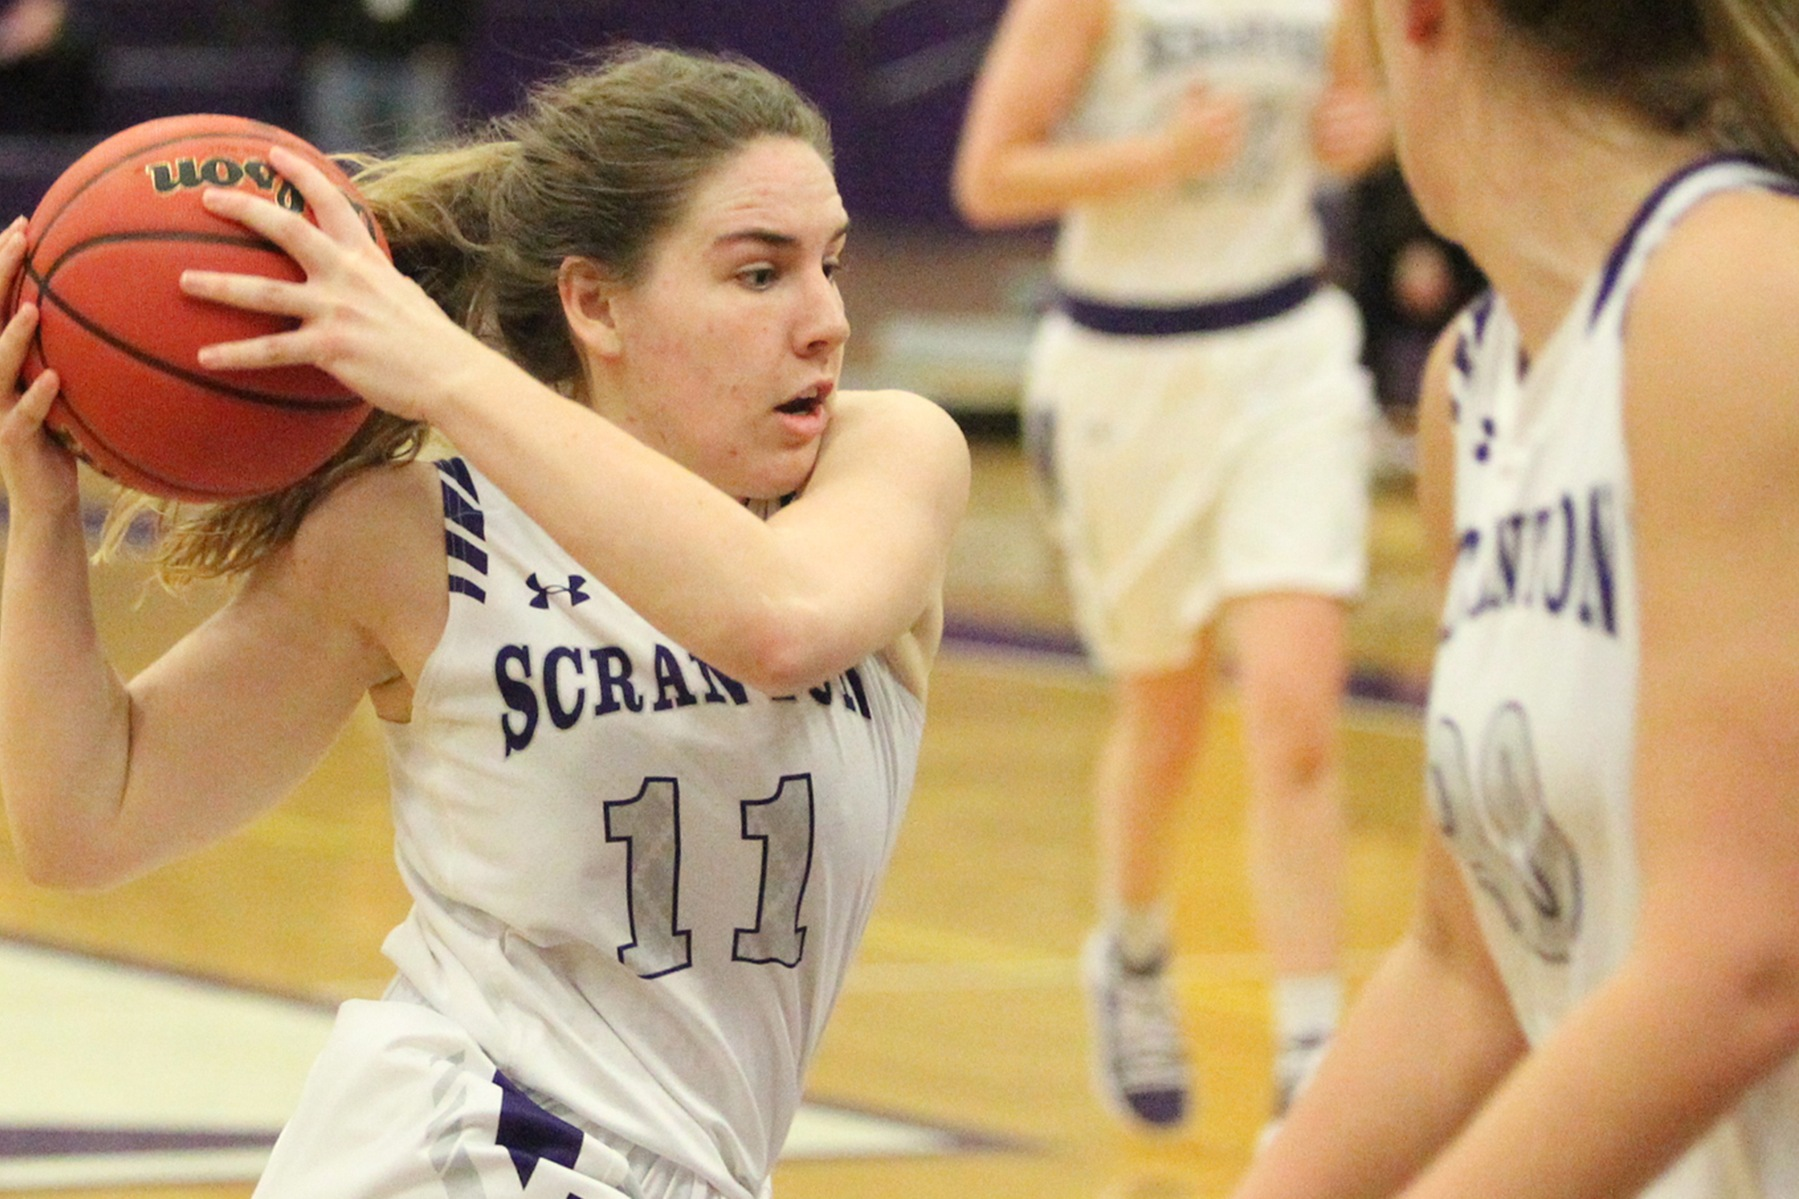 Four Score in Double-Figures, as Lady Royals Sail Past New England College in NCAA First Round